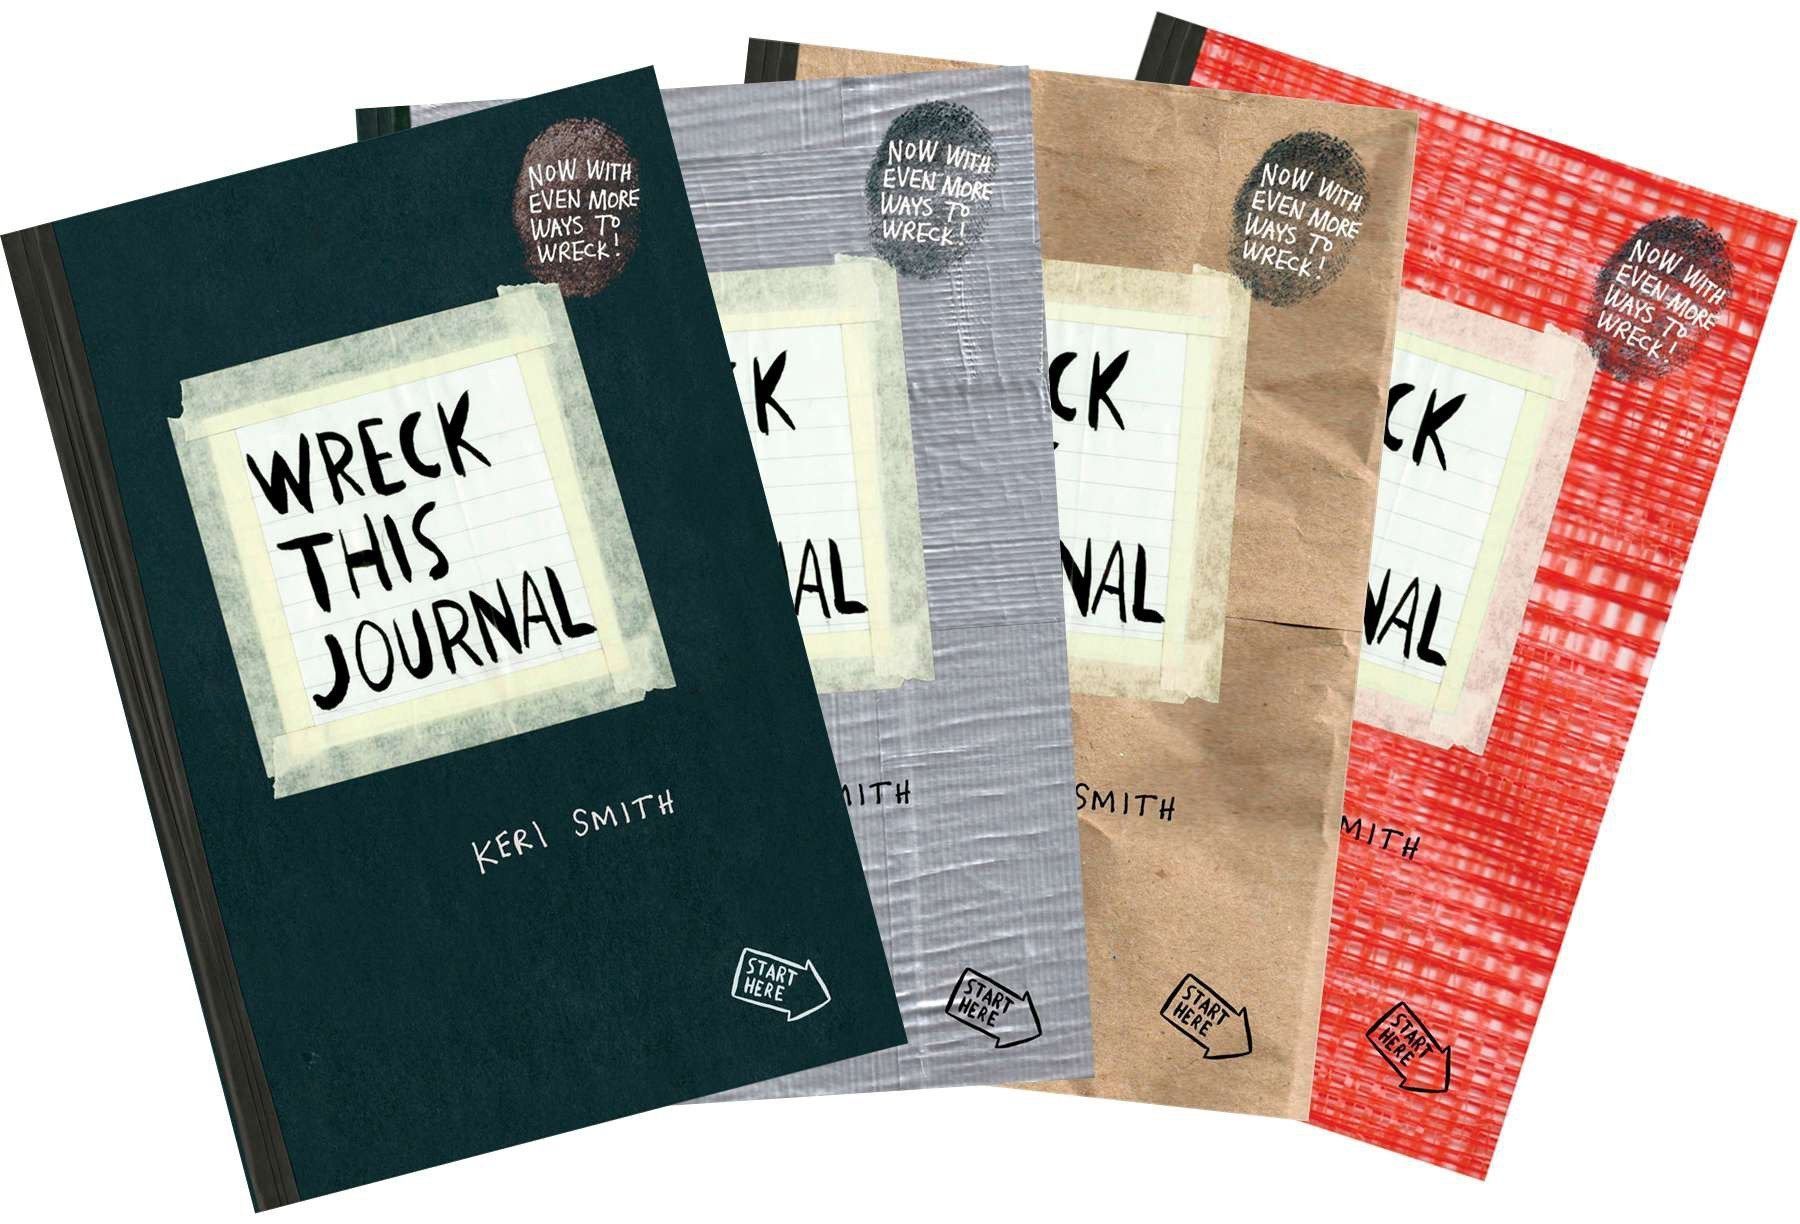 expanded Ed black Free Shipping Wreck This Journal Everywhere By Keri Smith 144 Pages English Original Book Wreck This Journal